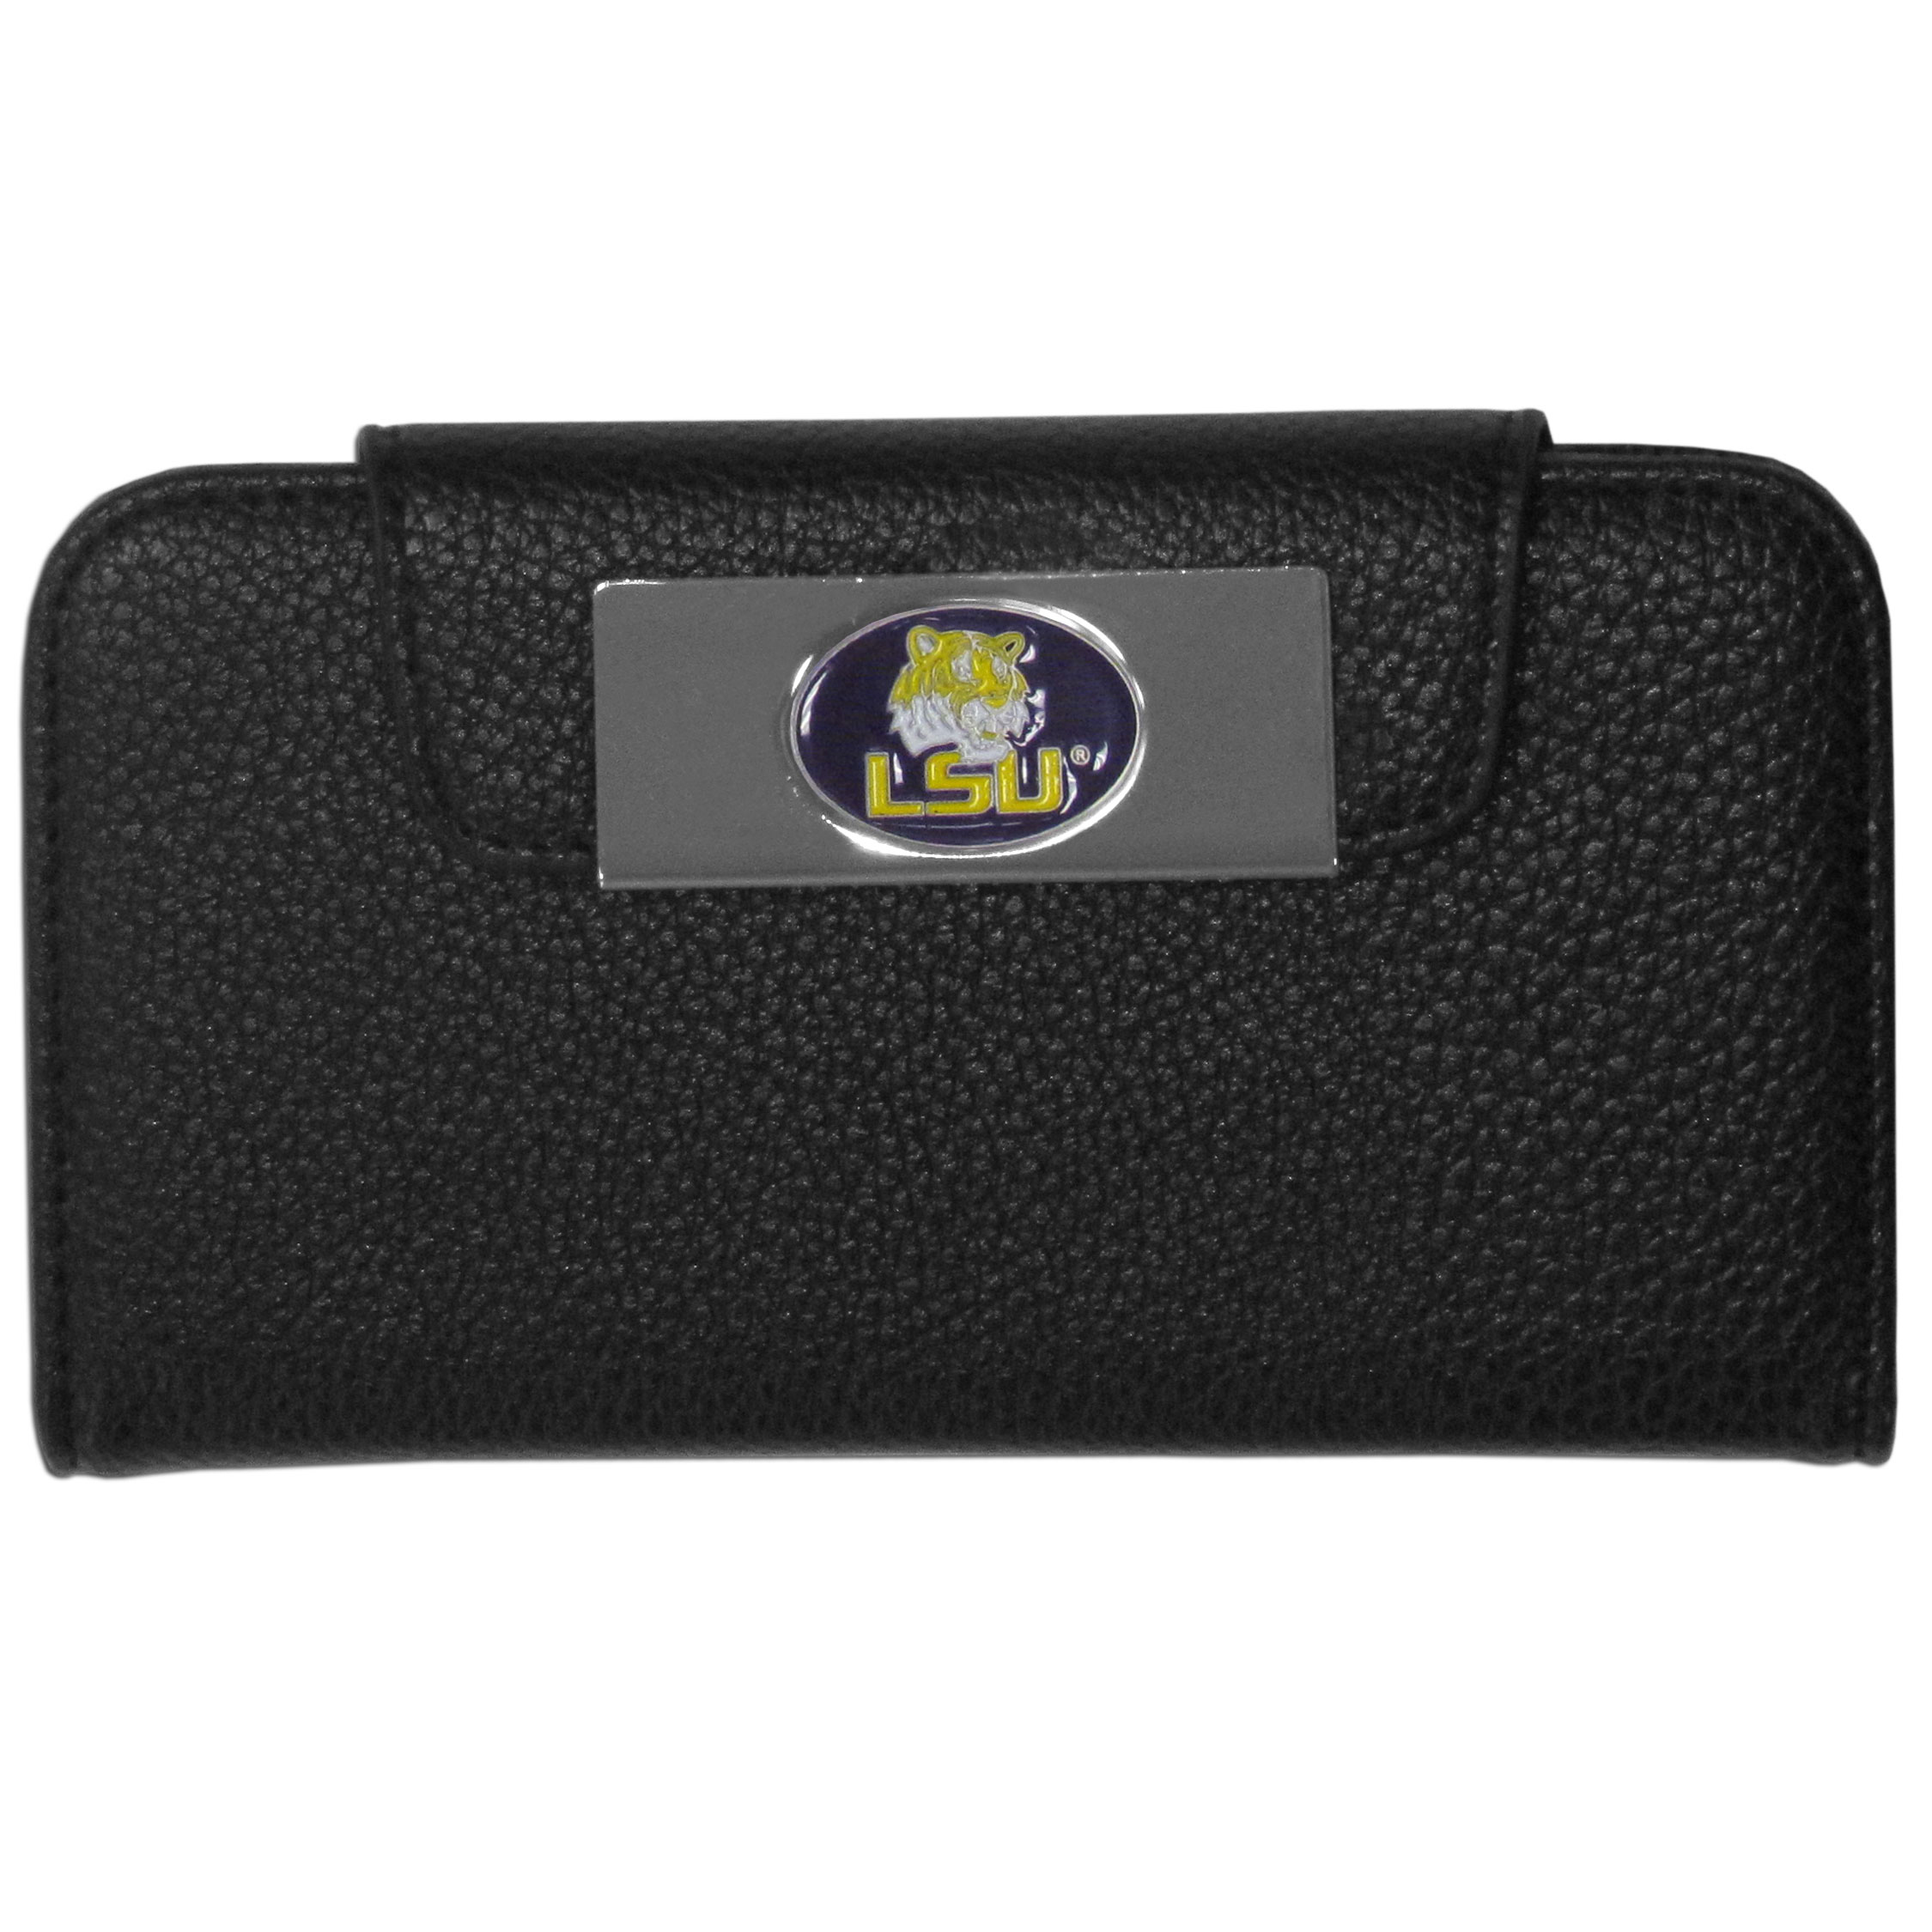 LSU Tigers iPhone 5/5S Wallet Case - This new & wildly popular case is ideal for those who like to travel light! The stylish case has an inner hard shell that securely holds your phone while allowing complete access to the phone's functionality. The flip cover has slots for credit cards, business cards and identification. The magnetic flip cover has a metal LSU Tigers emblem on a high polish chrome backing. Fits the iPhone 5/5S